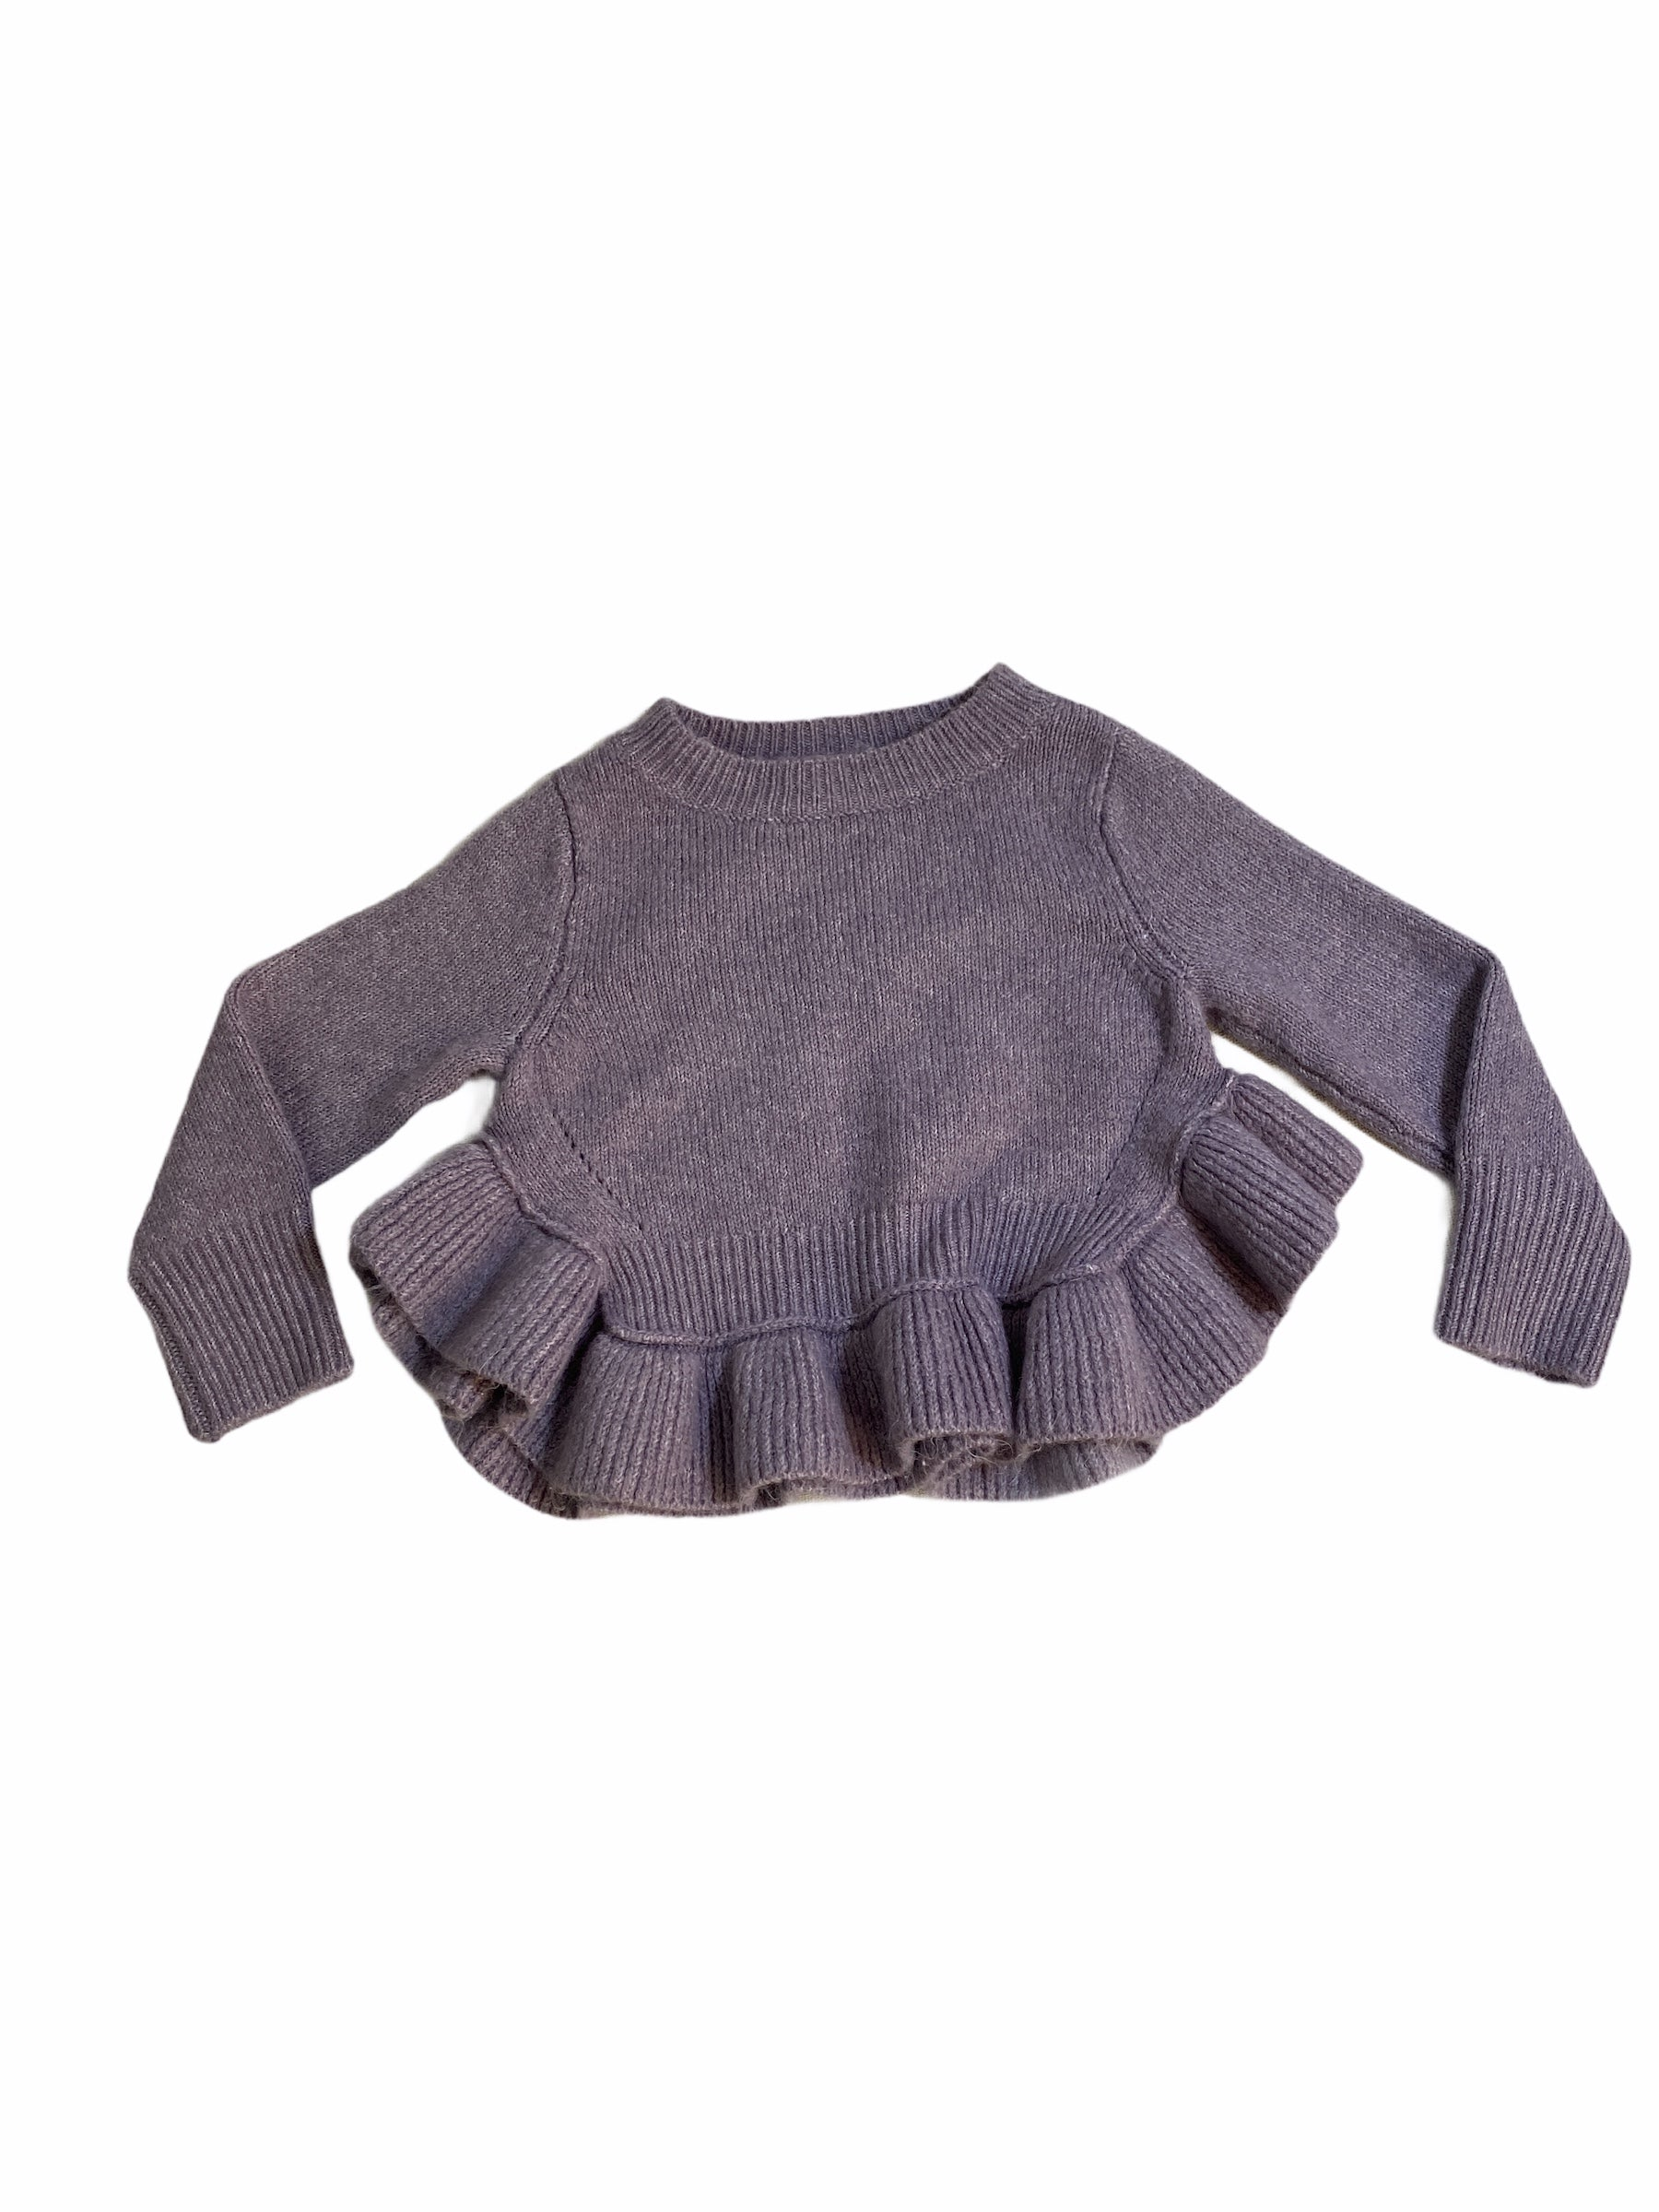 OshKosh Purple Sweater (12M Girls)